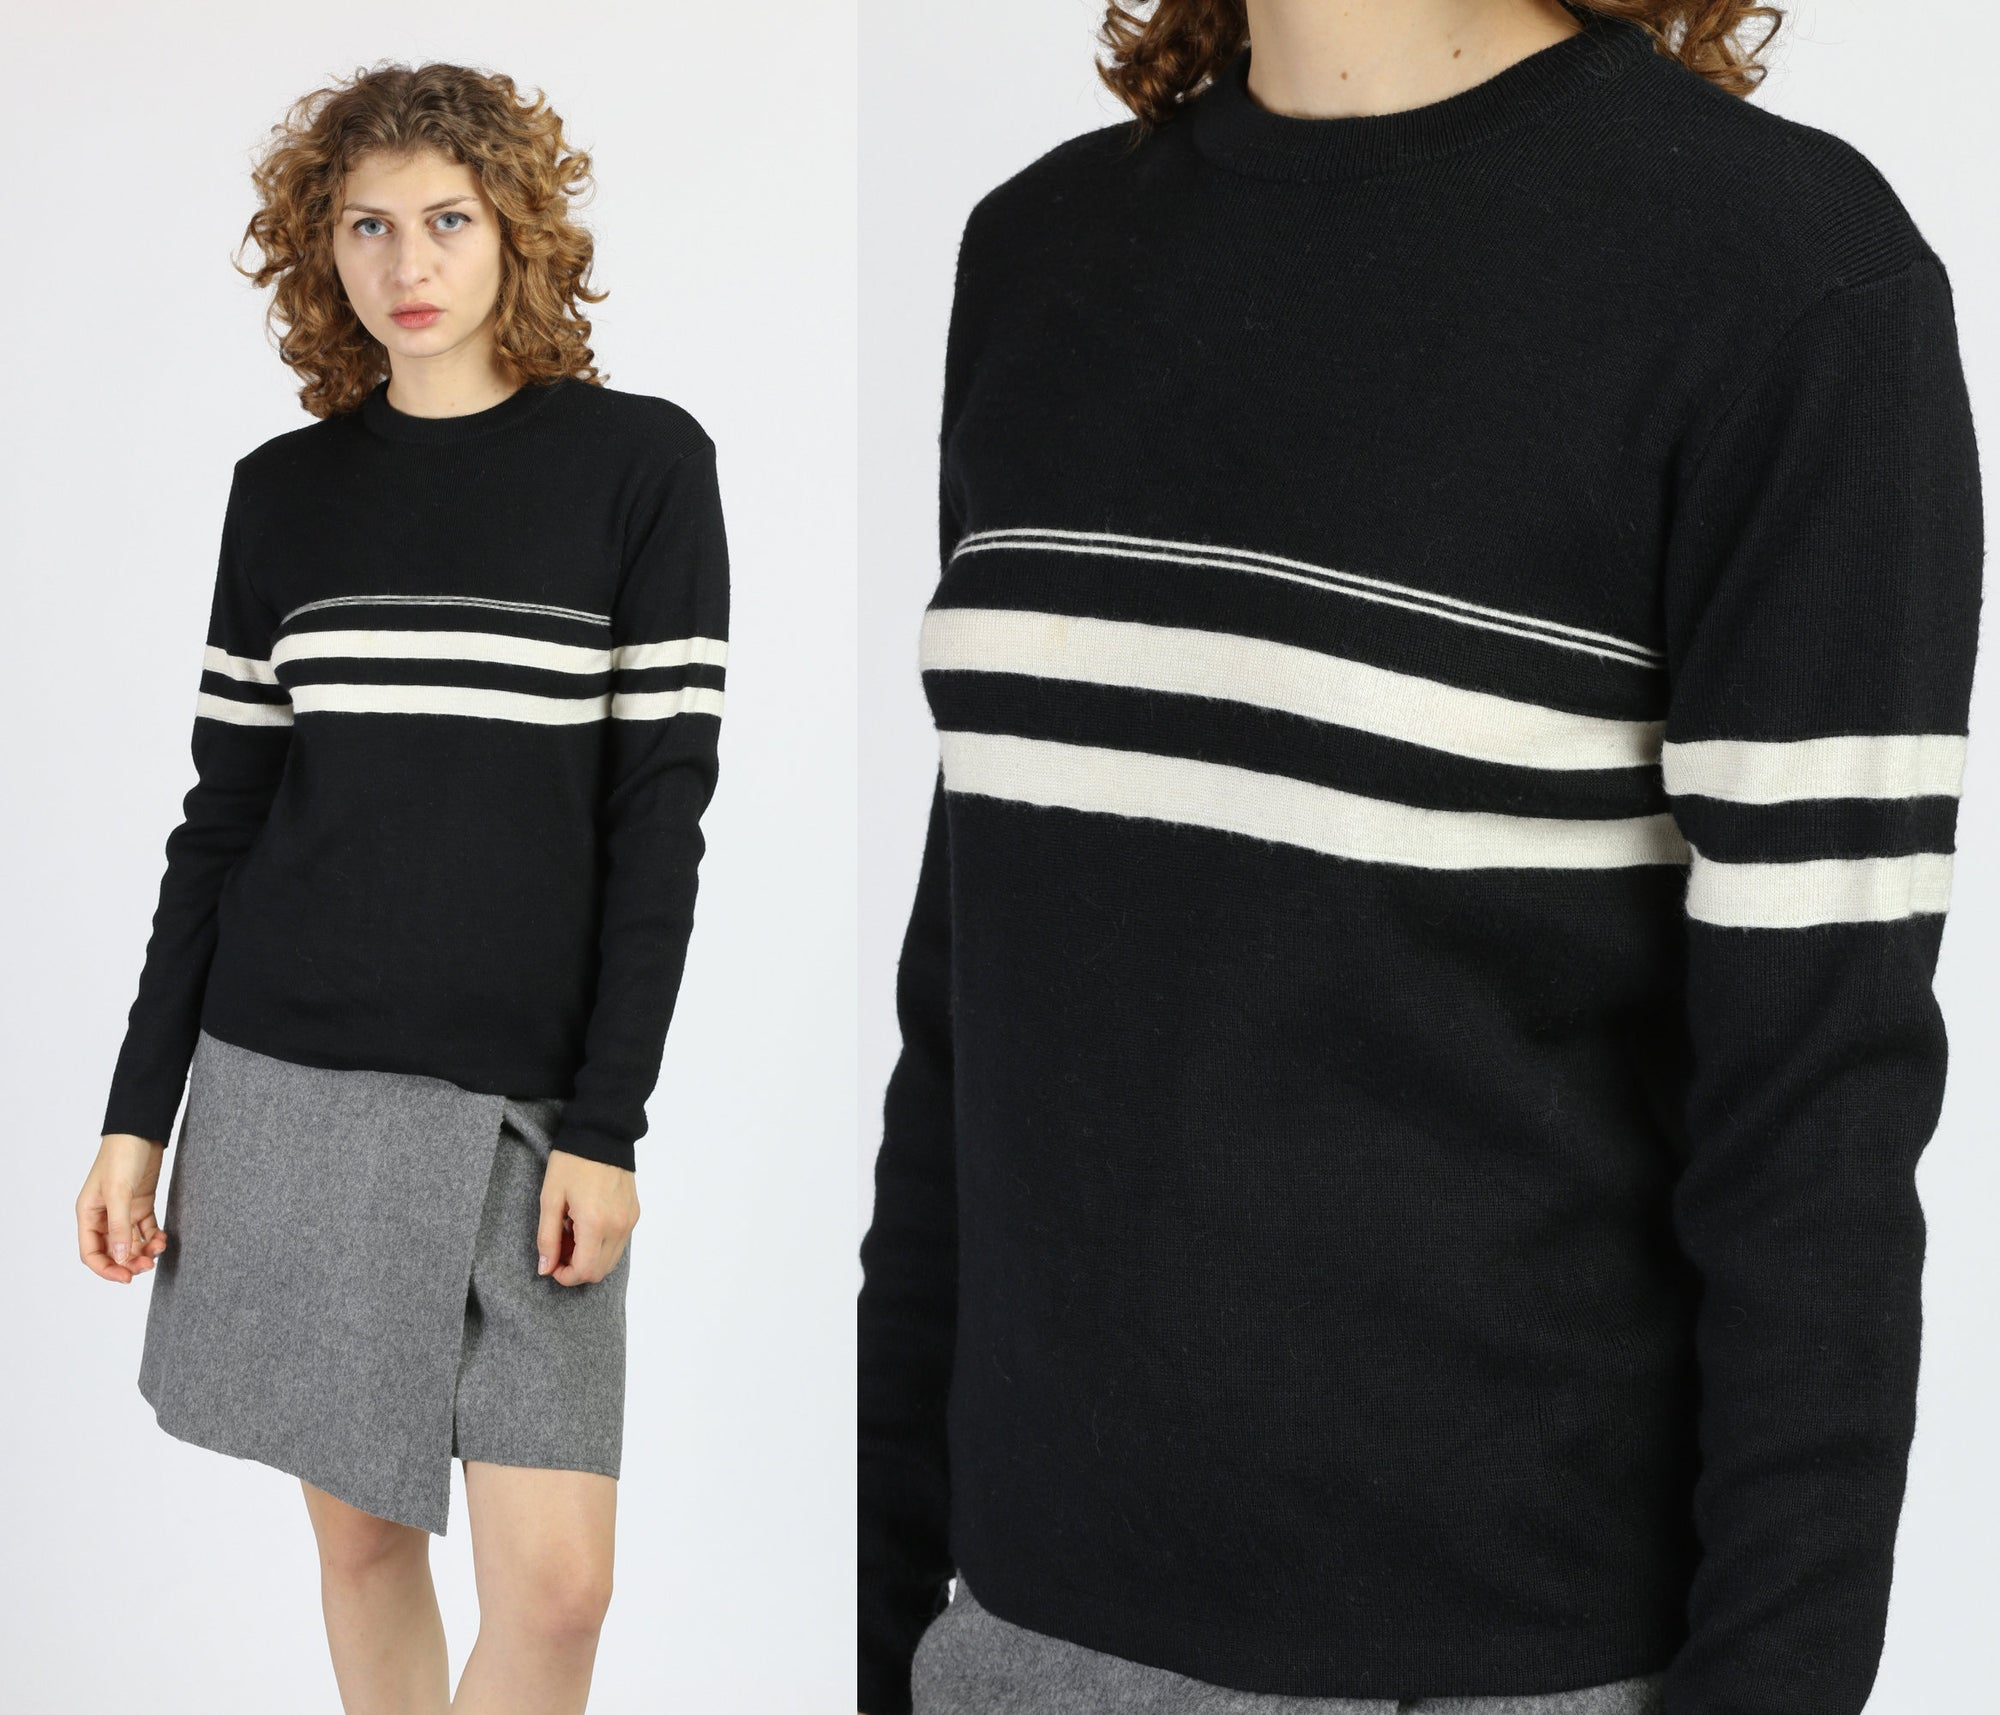 70s 80s Black & White Striped Sweater - Small to Medium